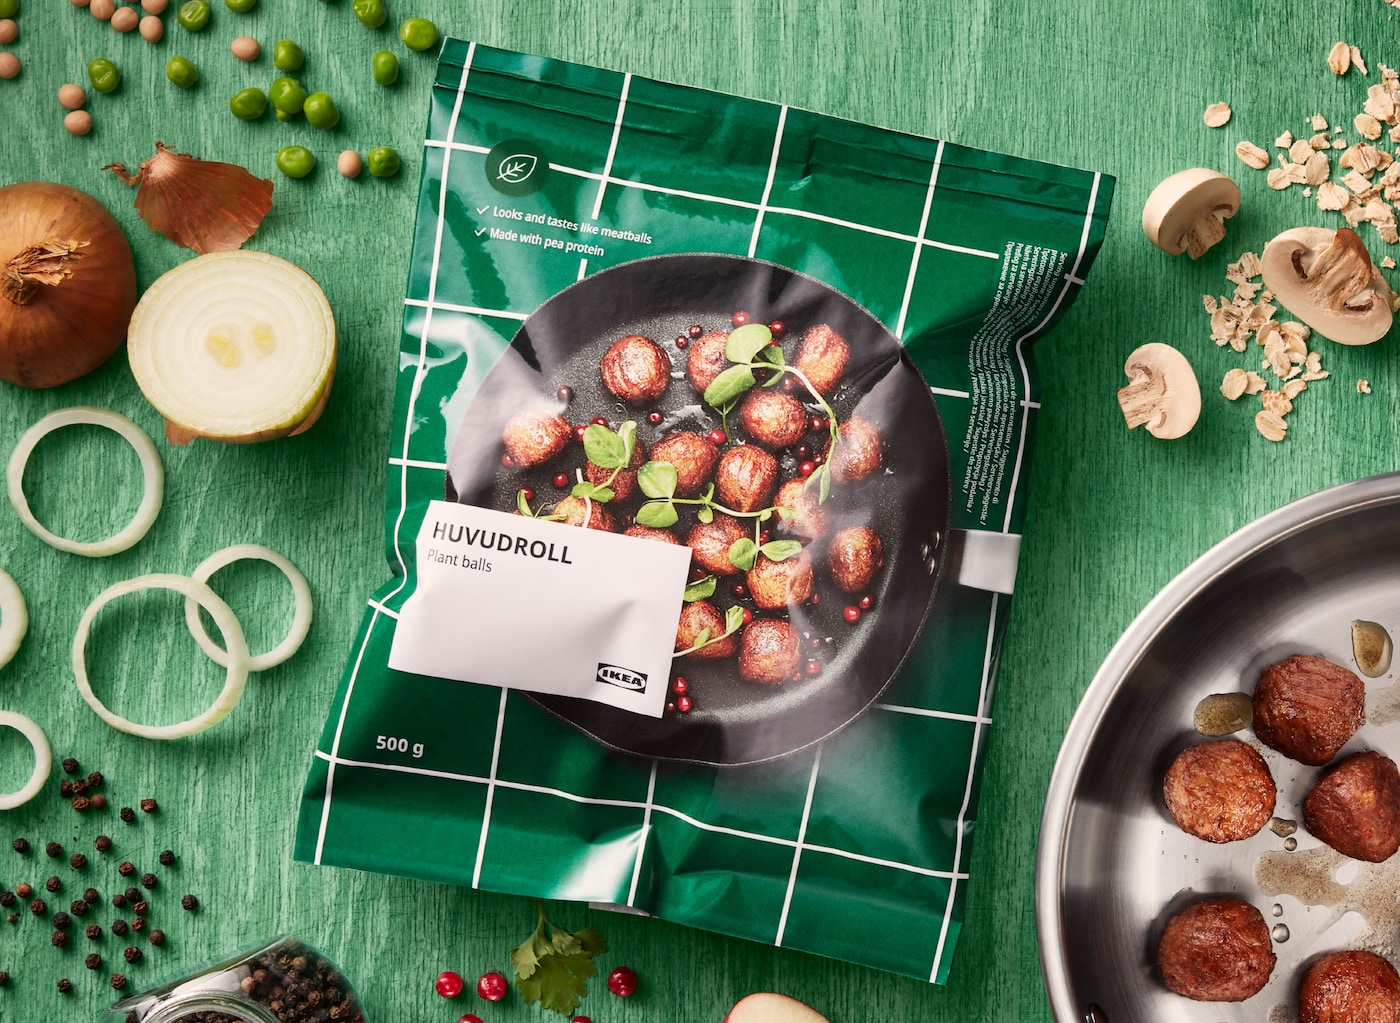 A packet of IKEA HUVUDROLL plant balls placed on a green wooden surface. The packet is surrounded by various ingredients.